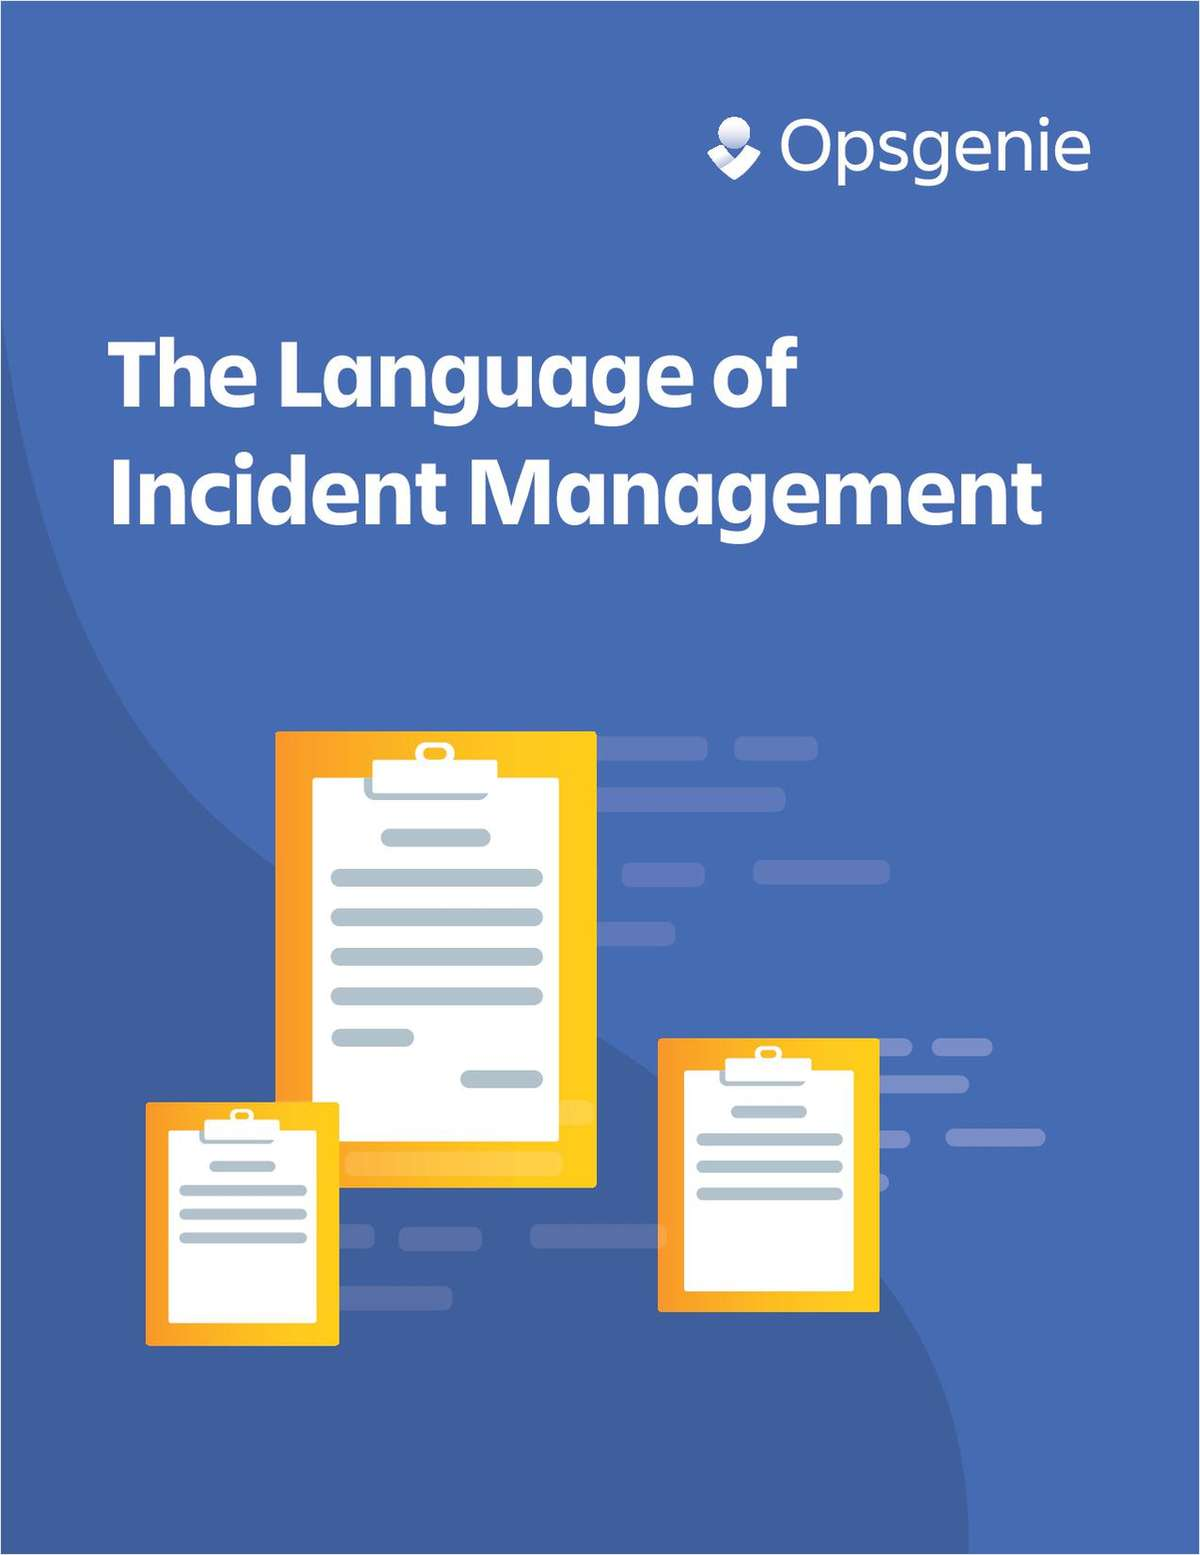 The Language of Incident Management